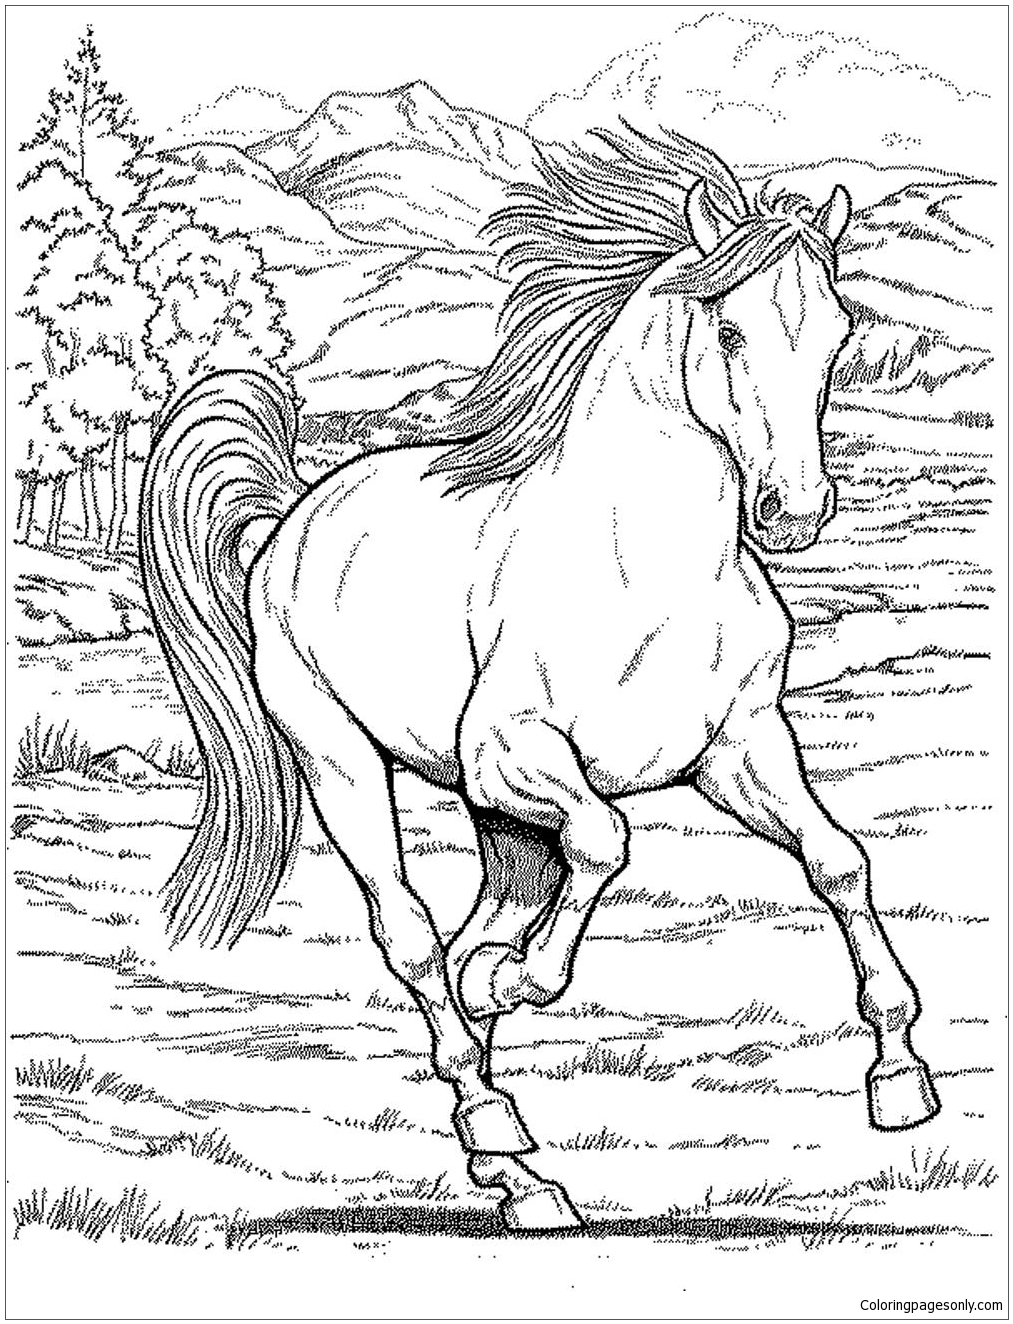 coloring pages native american | Dover Publ. horse coloring page ... | 1324x1013